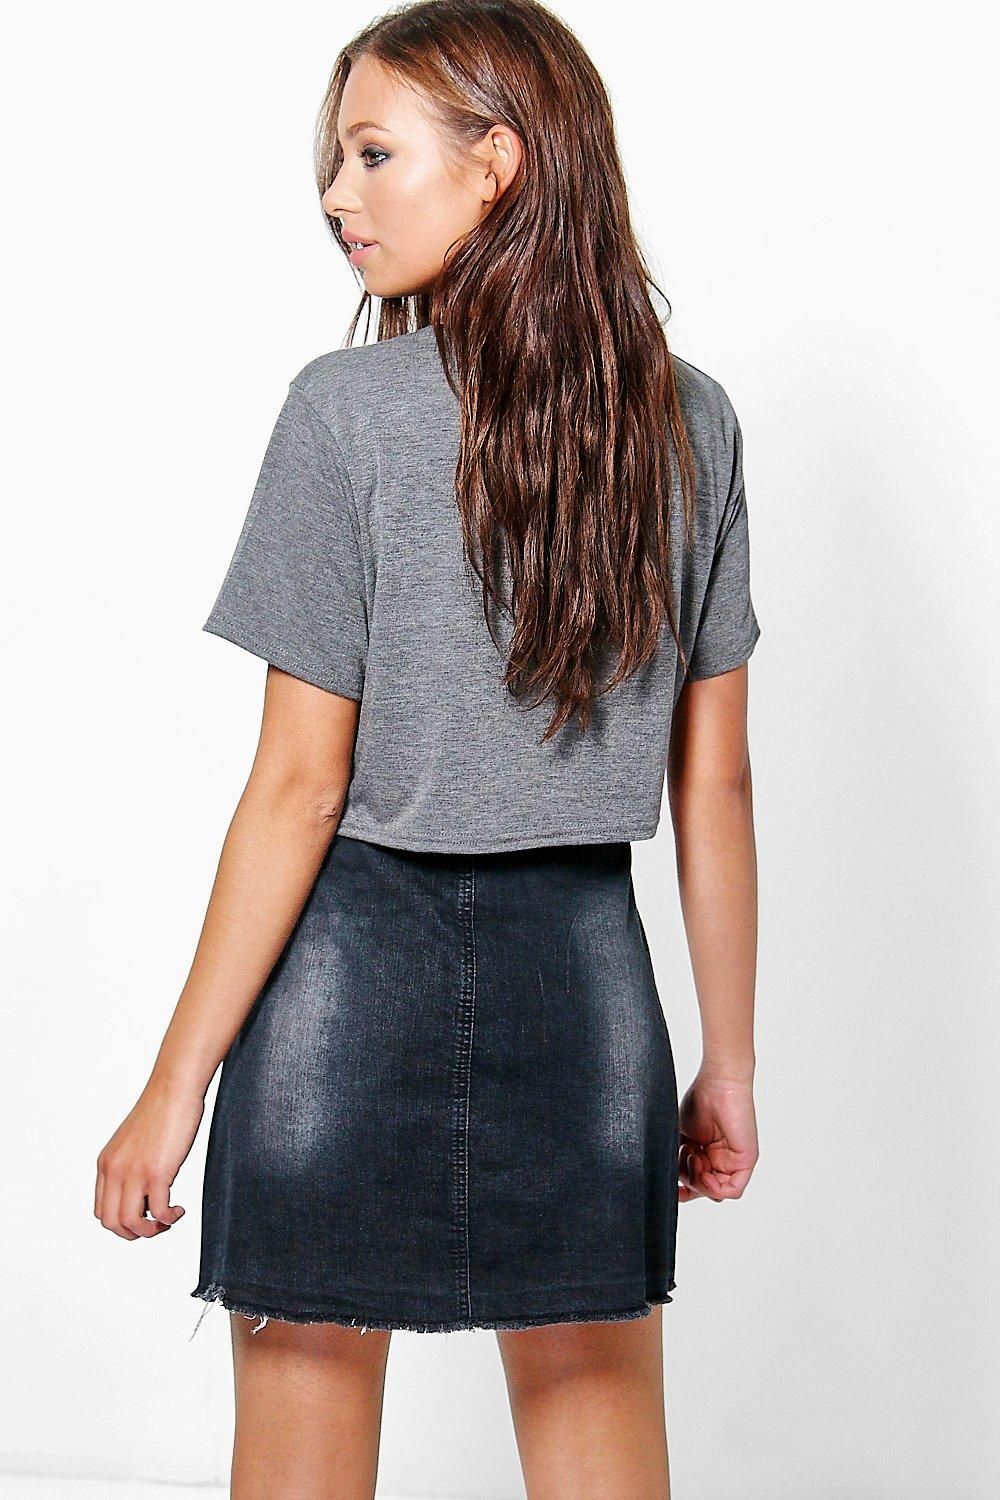 boohoo womens ada button through black denim skirt